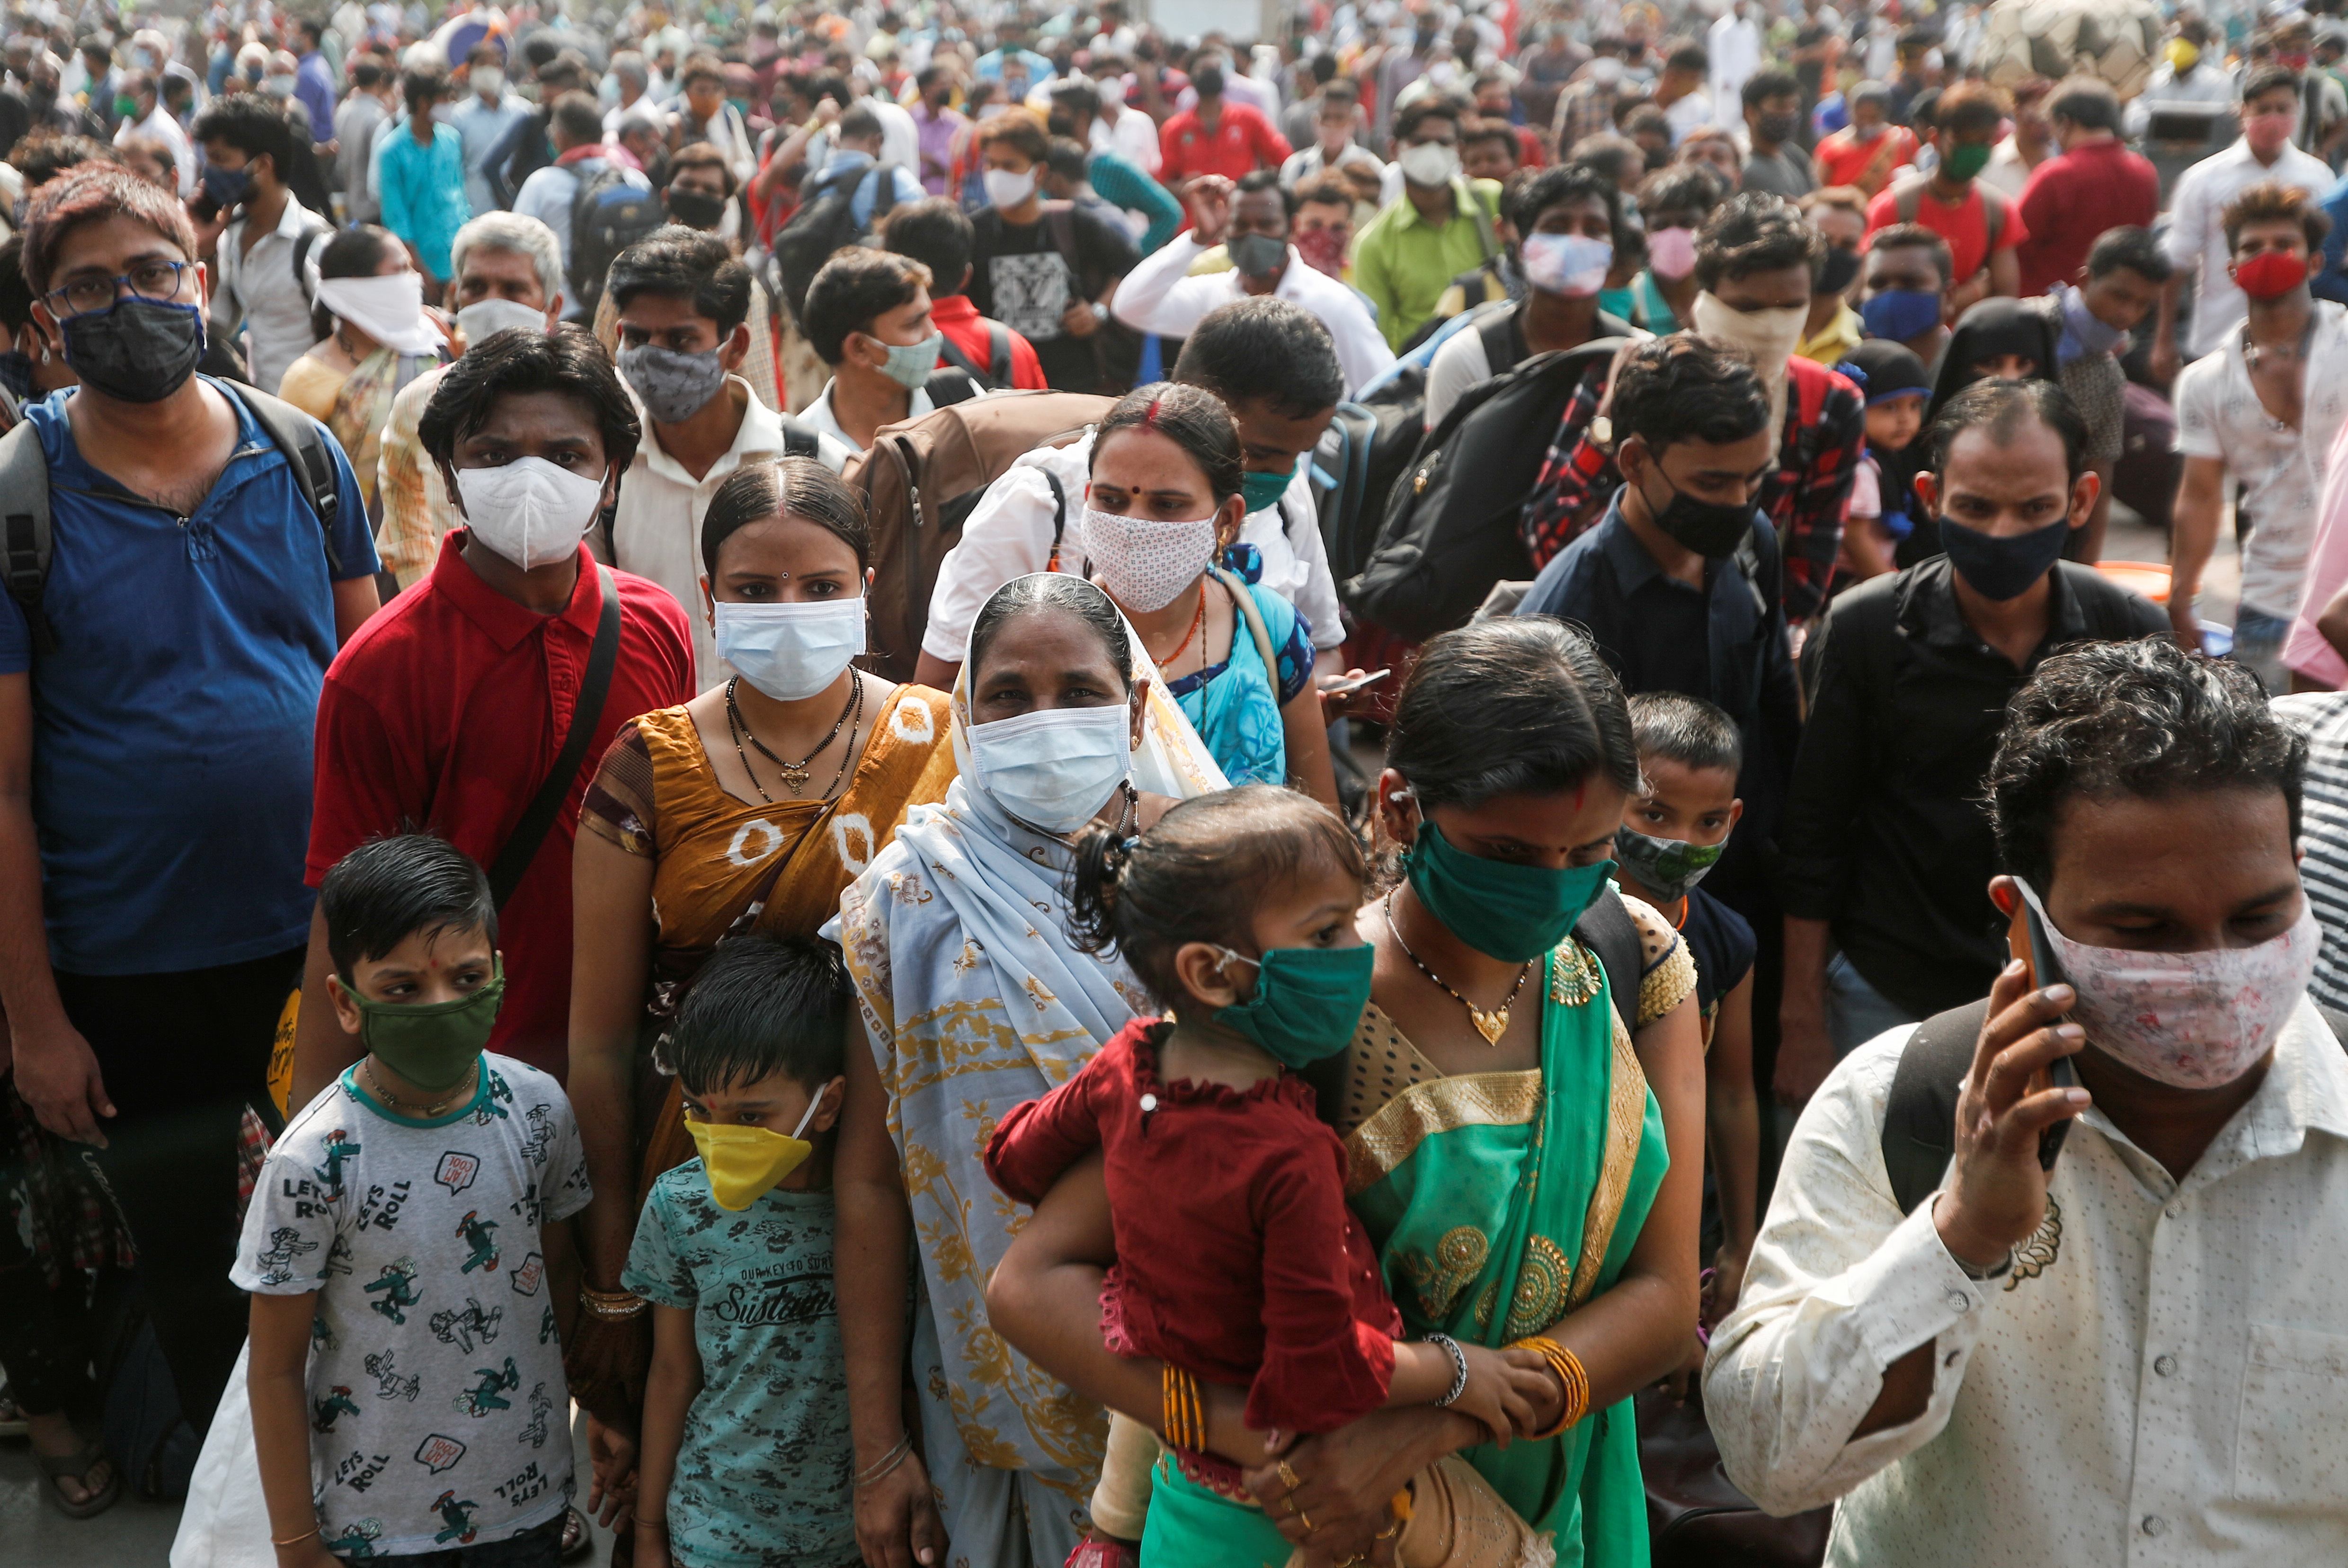 People wearing protective masks stand outside a railway station amidst the spread of the coronavirus disease (COVID-19), in Mumbai, India, April 13, 2021. REUTERS/Francis Mascarenhas